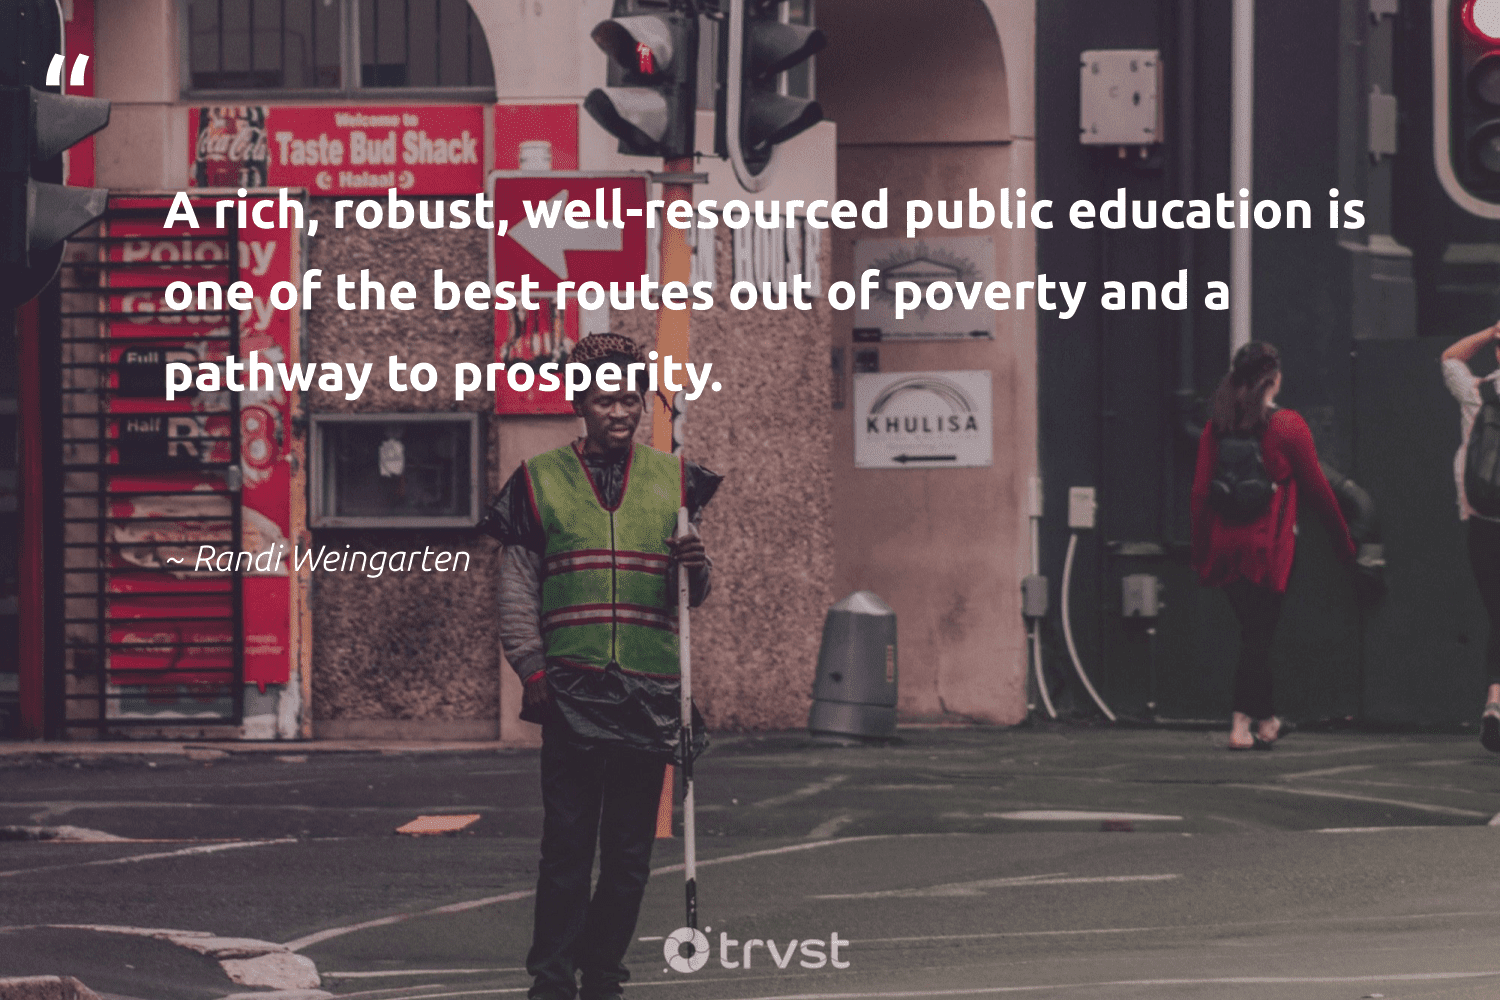 """""""A rich, robust, well-resourced public education is one of the best routes out of poverty and a pathway to prosperity.""""  - Randi Weingarten #trvst #quotes #poverty #education #endpoverty #equalrights #sustainablefutures #thinkgreen #weareallone #equalopportunity #ecoconscious #inclusion"""